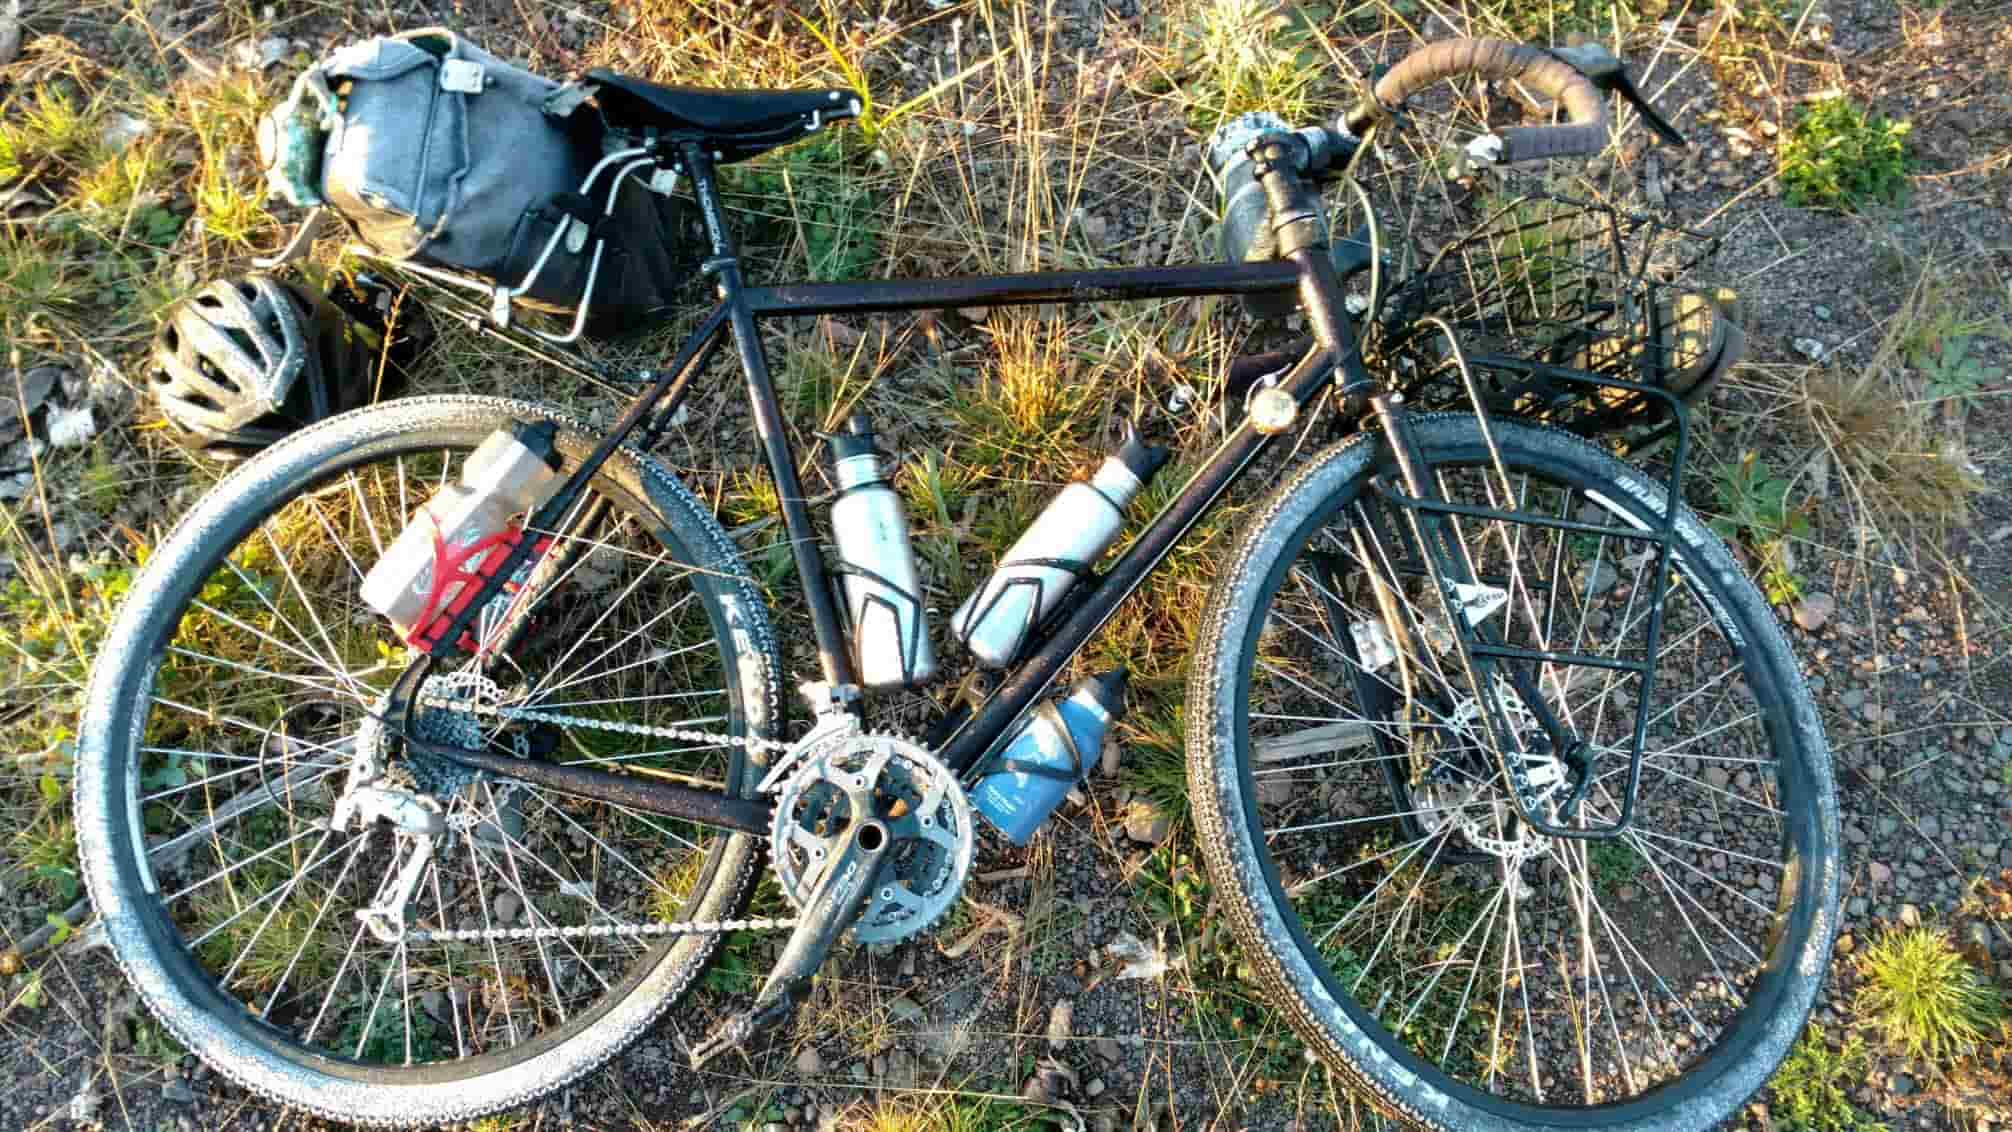 Downward left side view of a bike loaded with gear, laying on it's left side in gravel and weeds